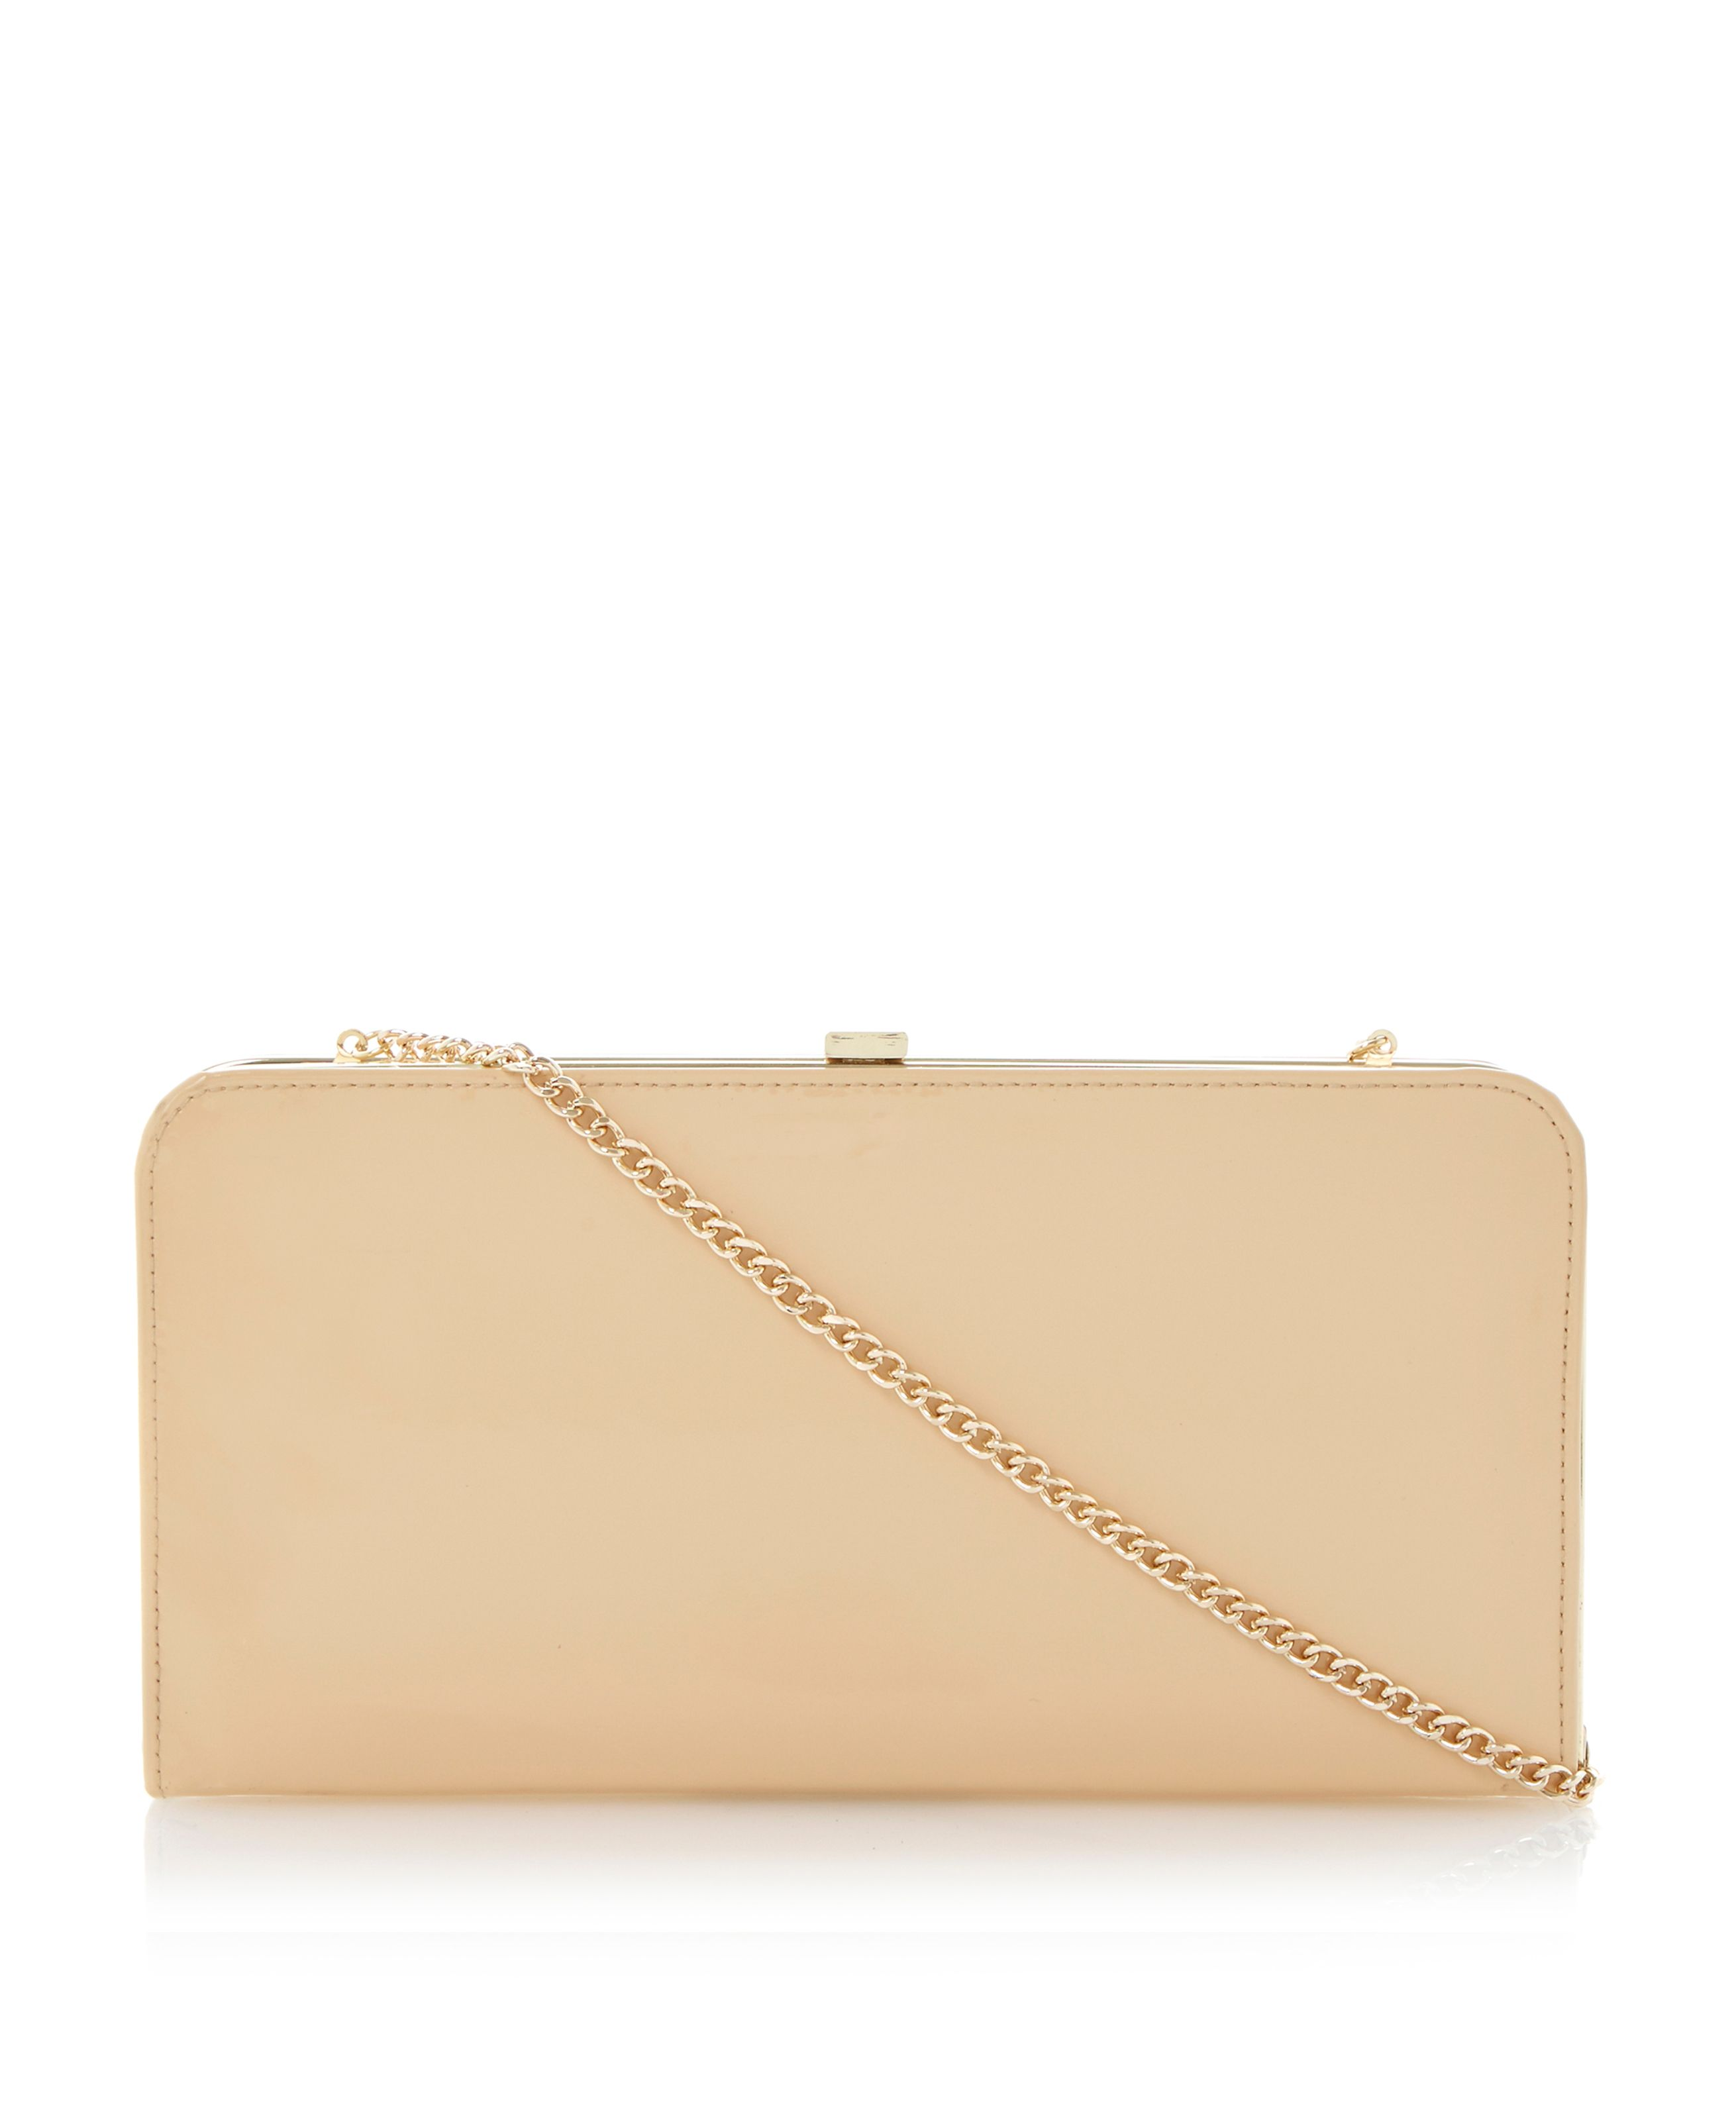 Bemzie leather clutch bag